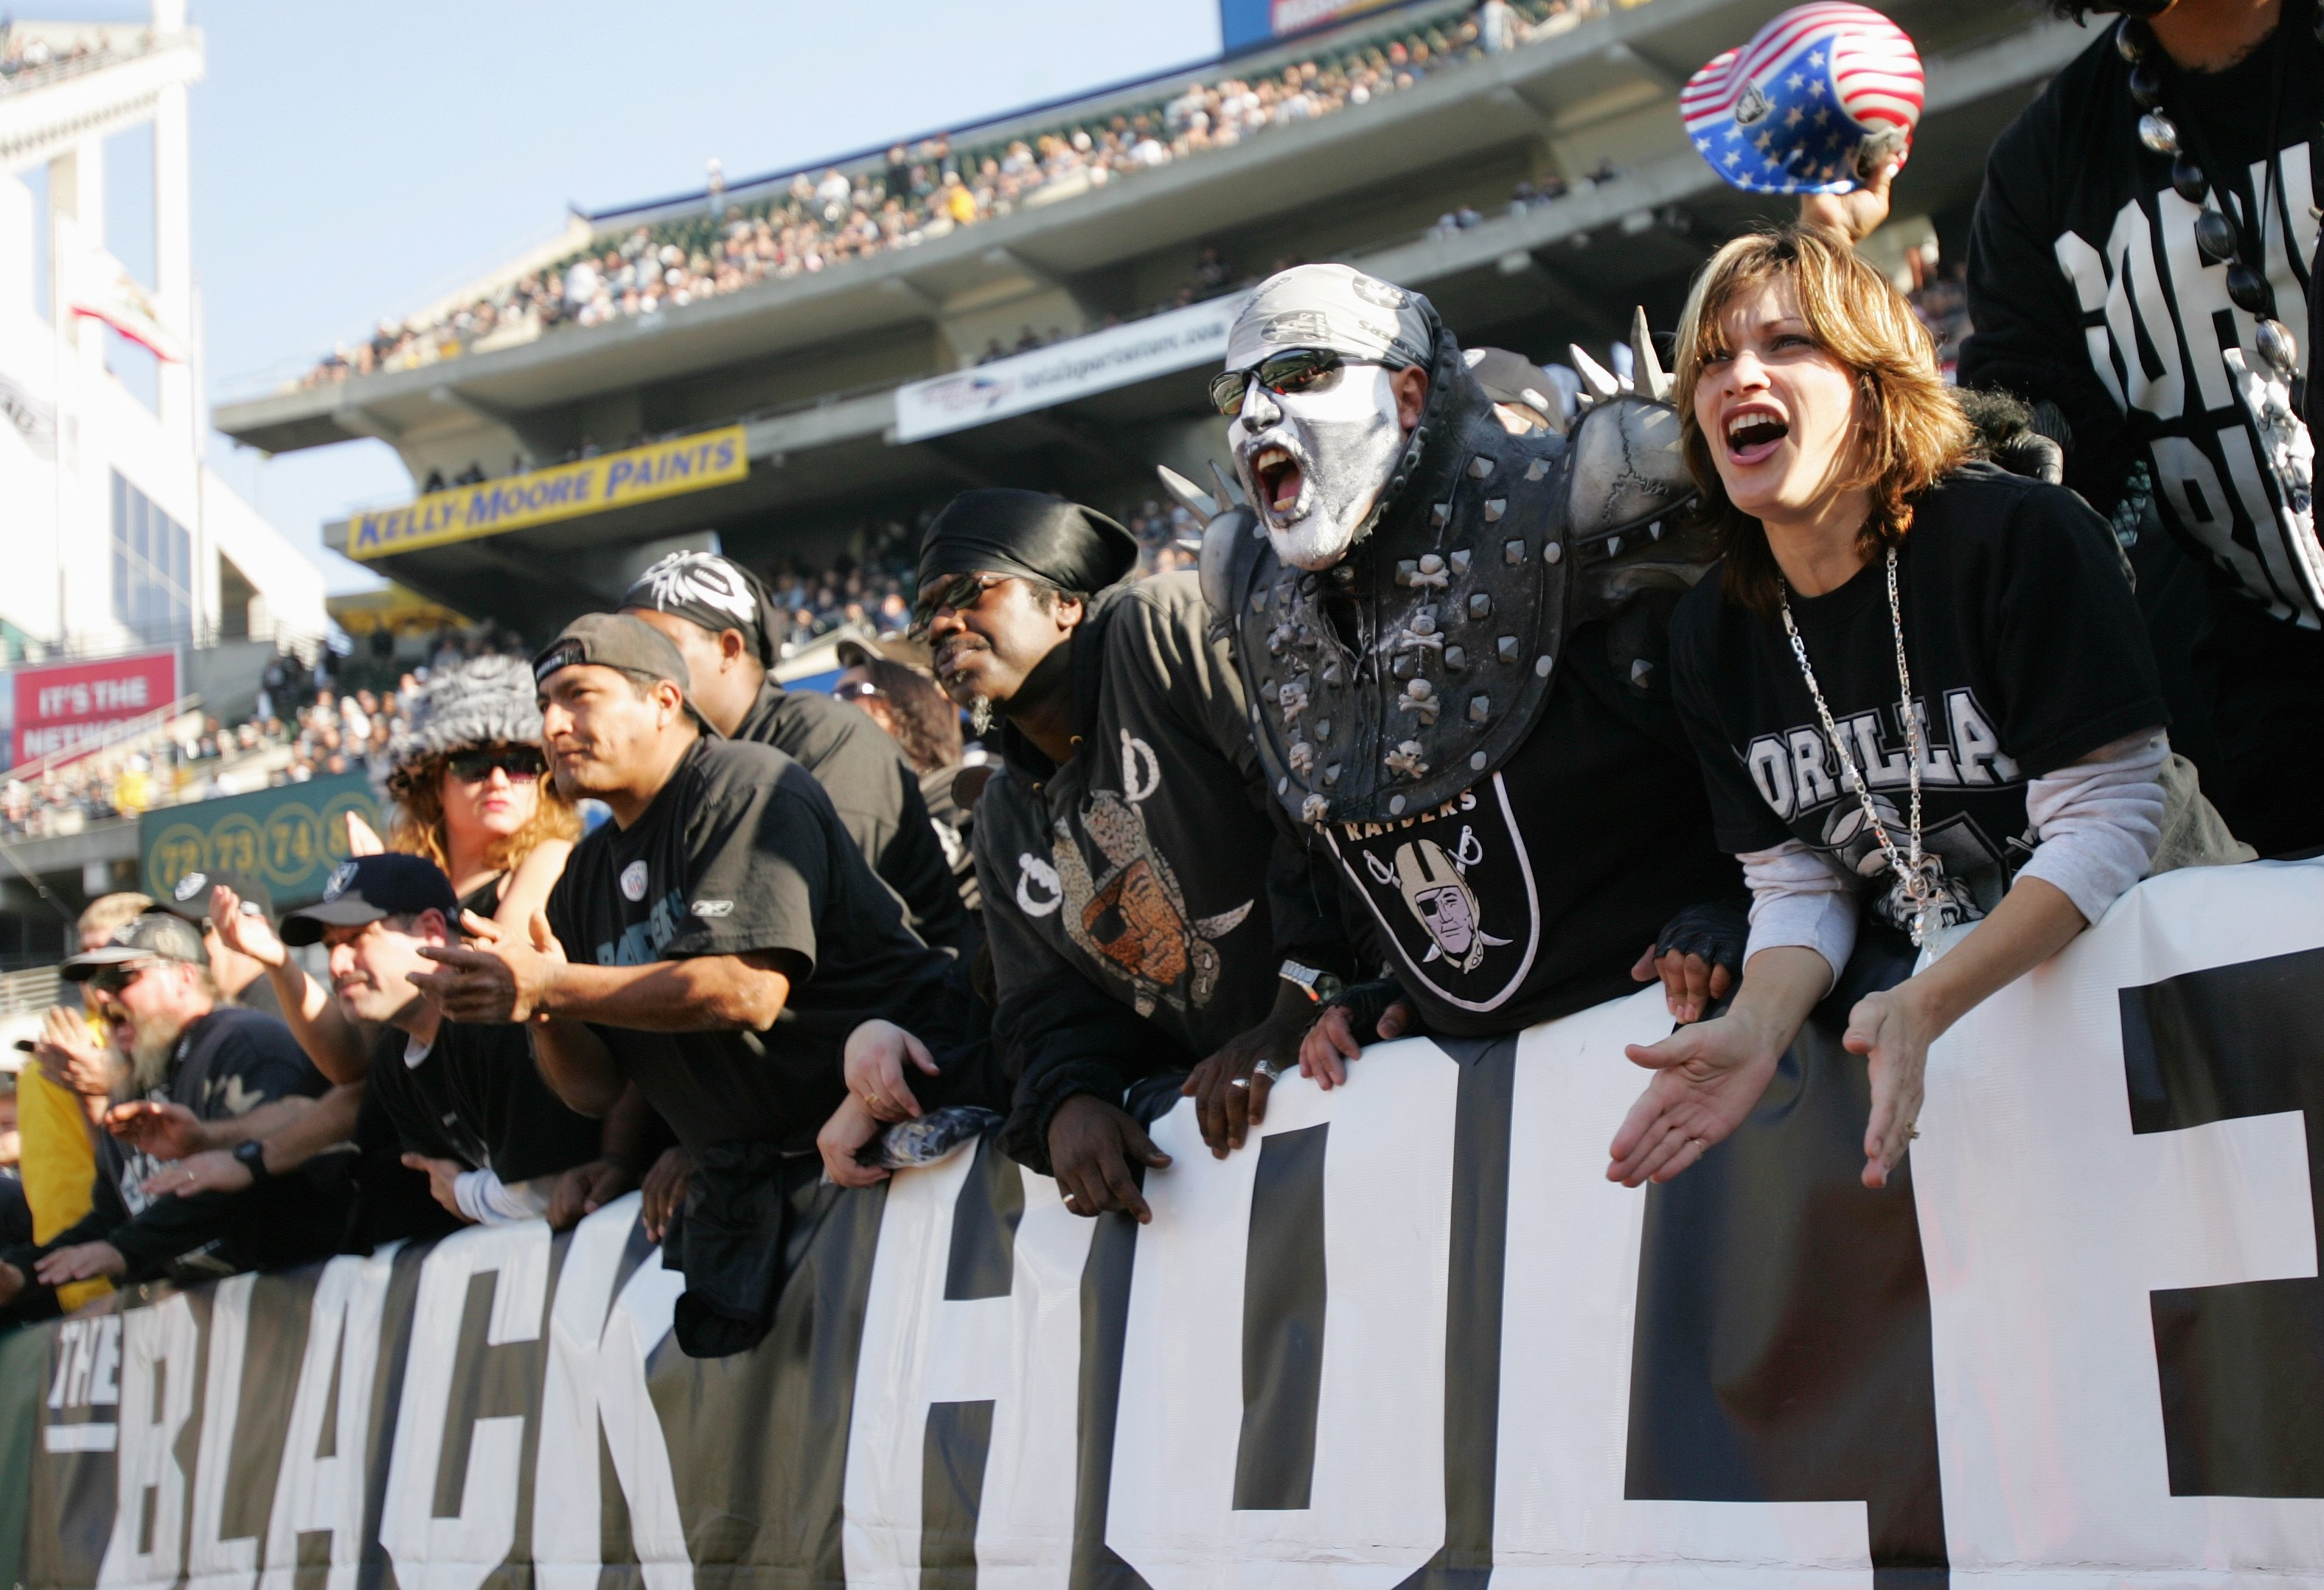 Raiders fans cheering during a game